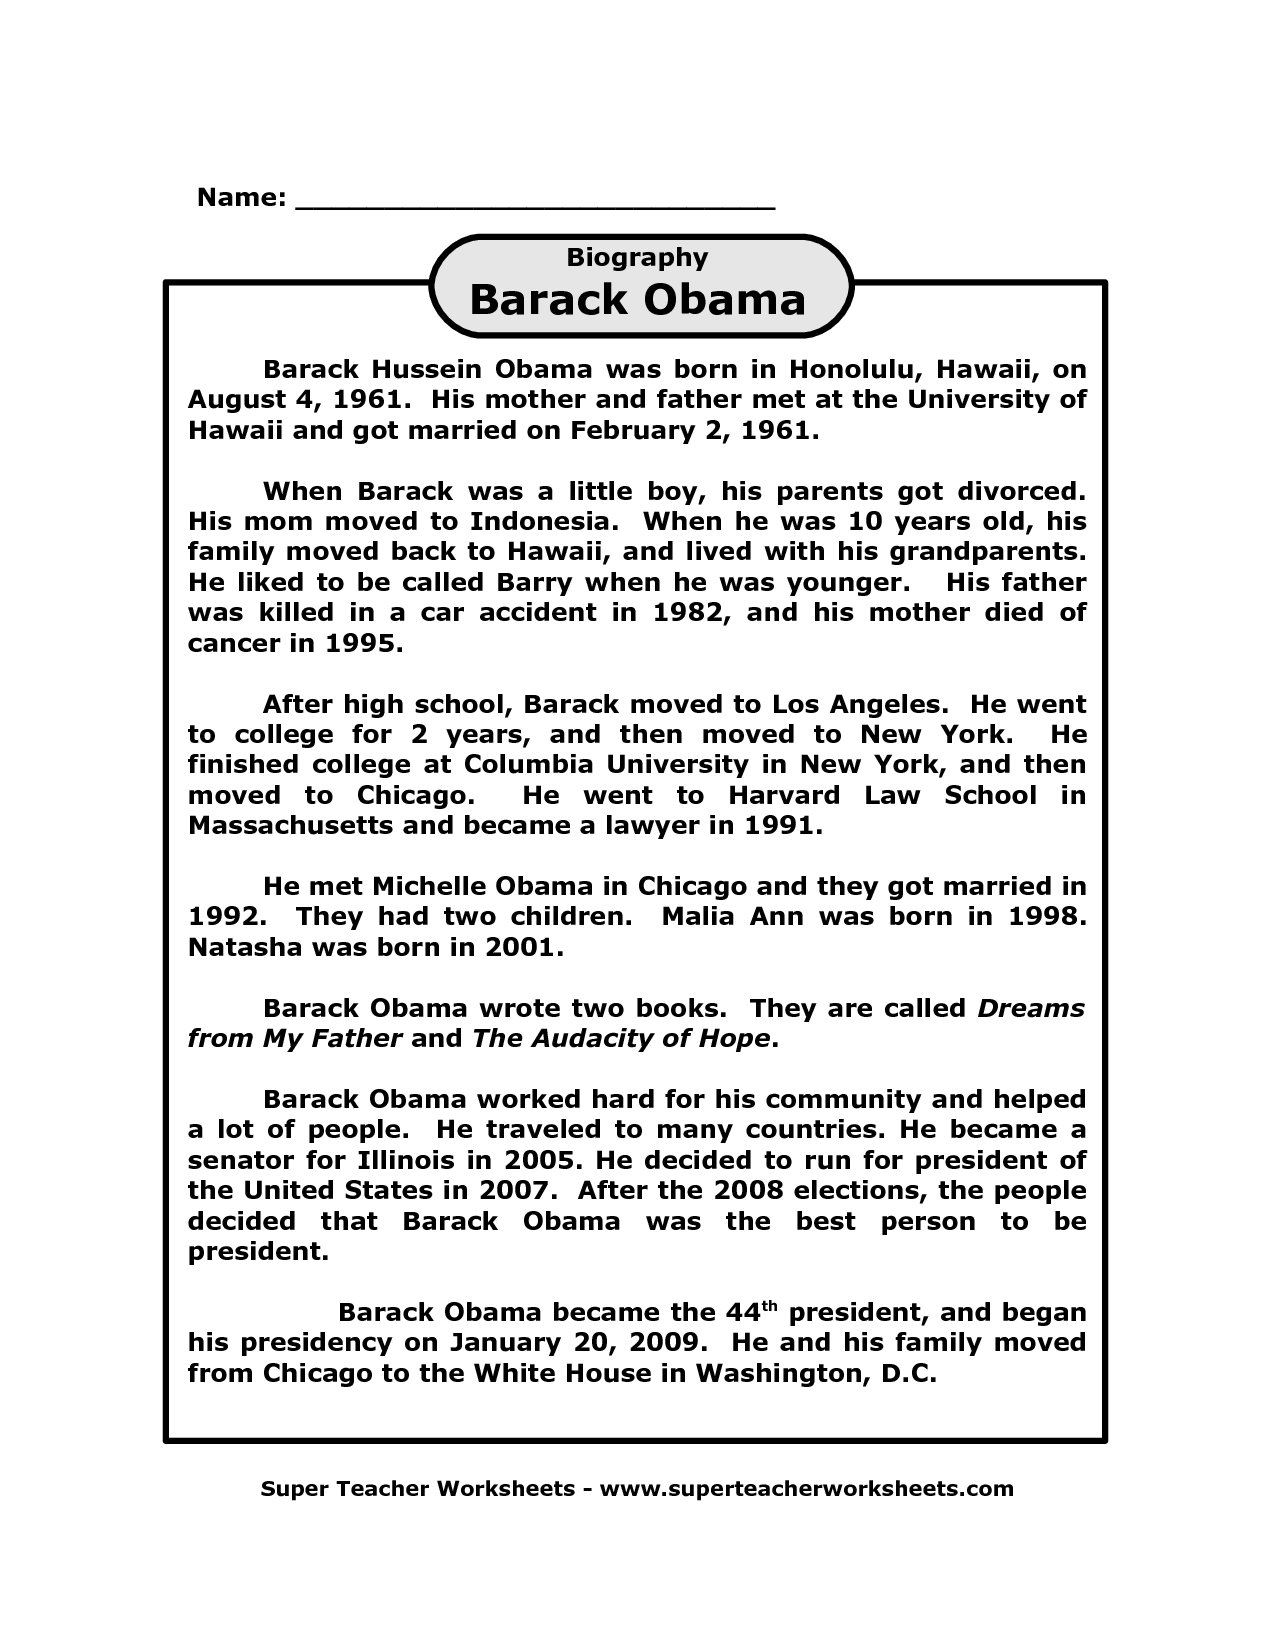 Barack Obama Biography Printable On Super Teacher